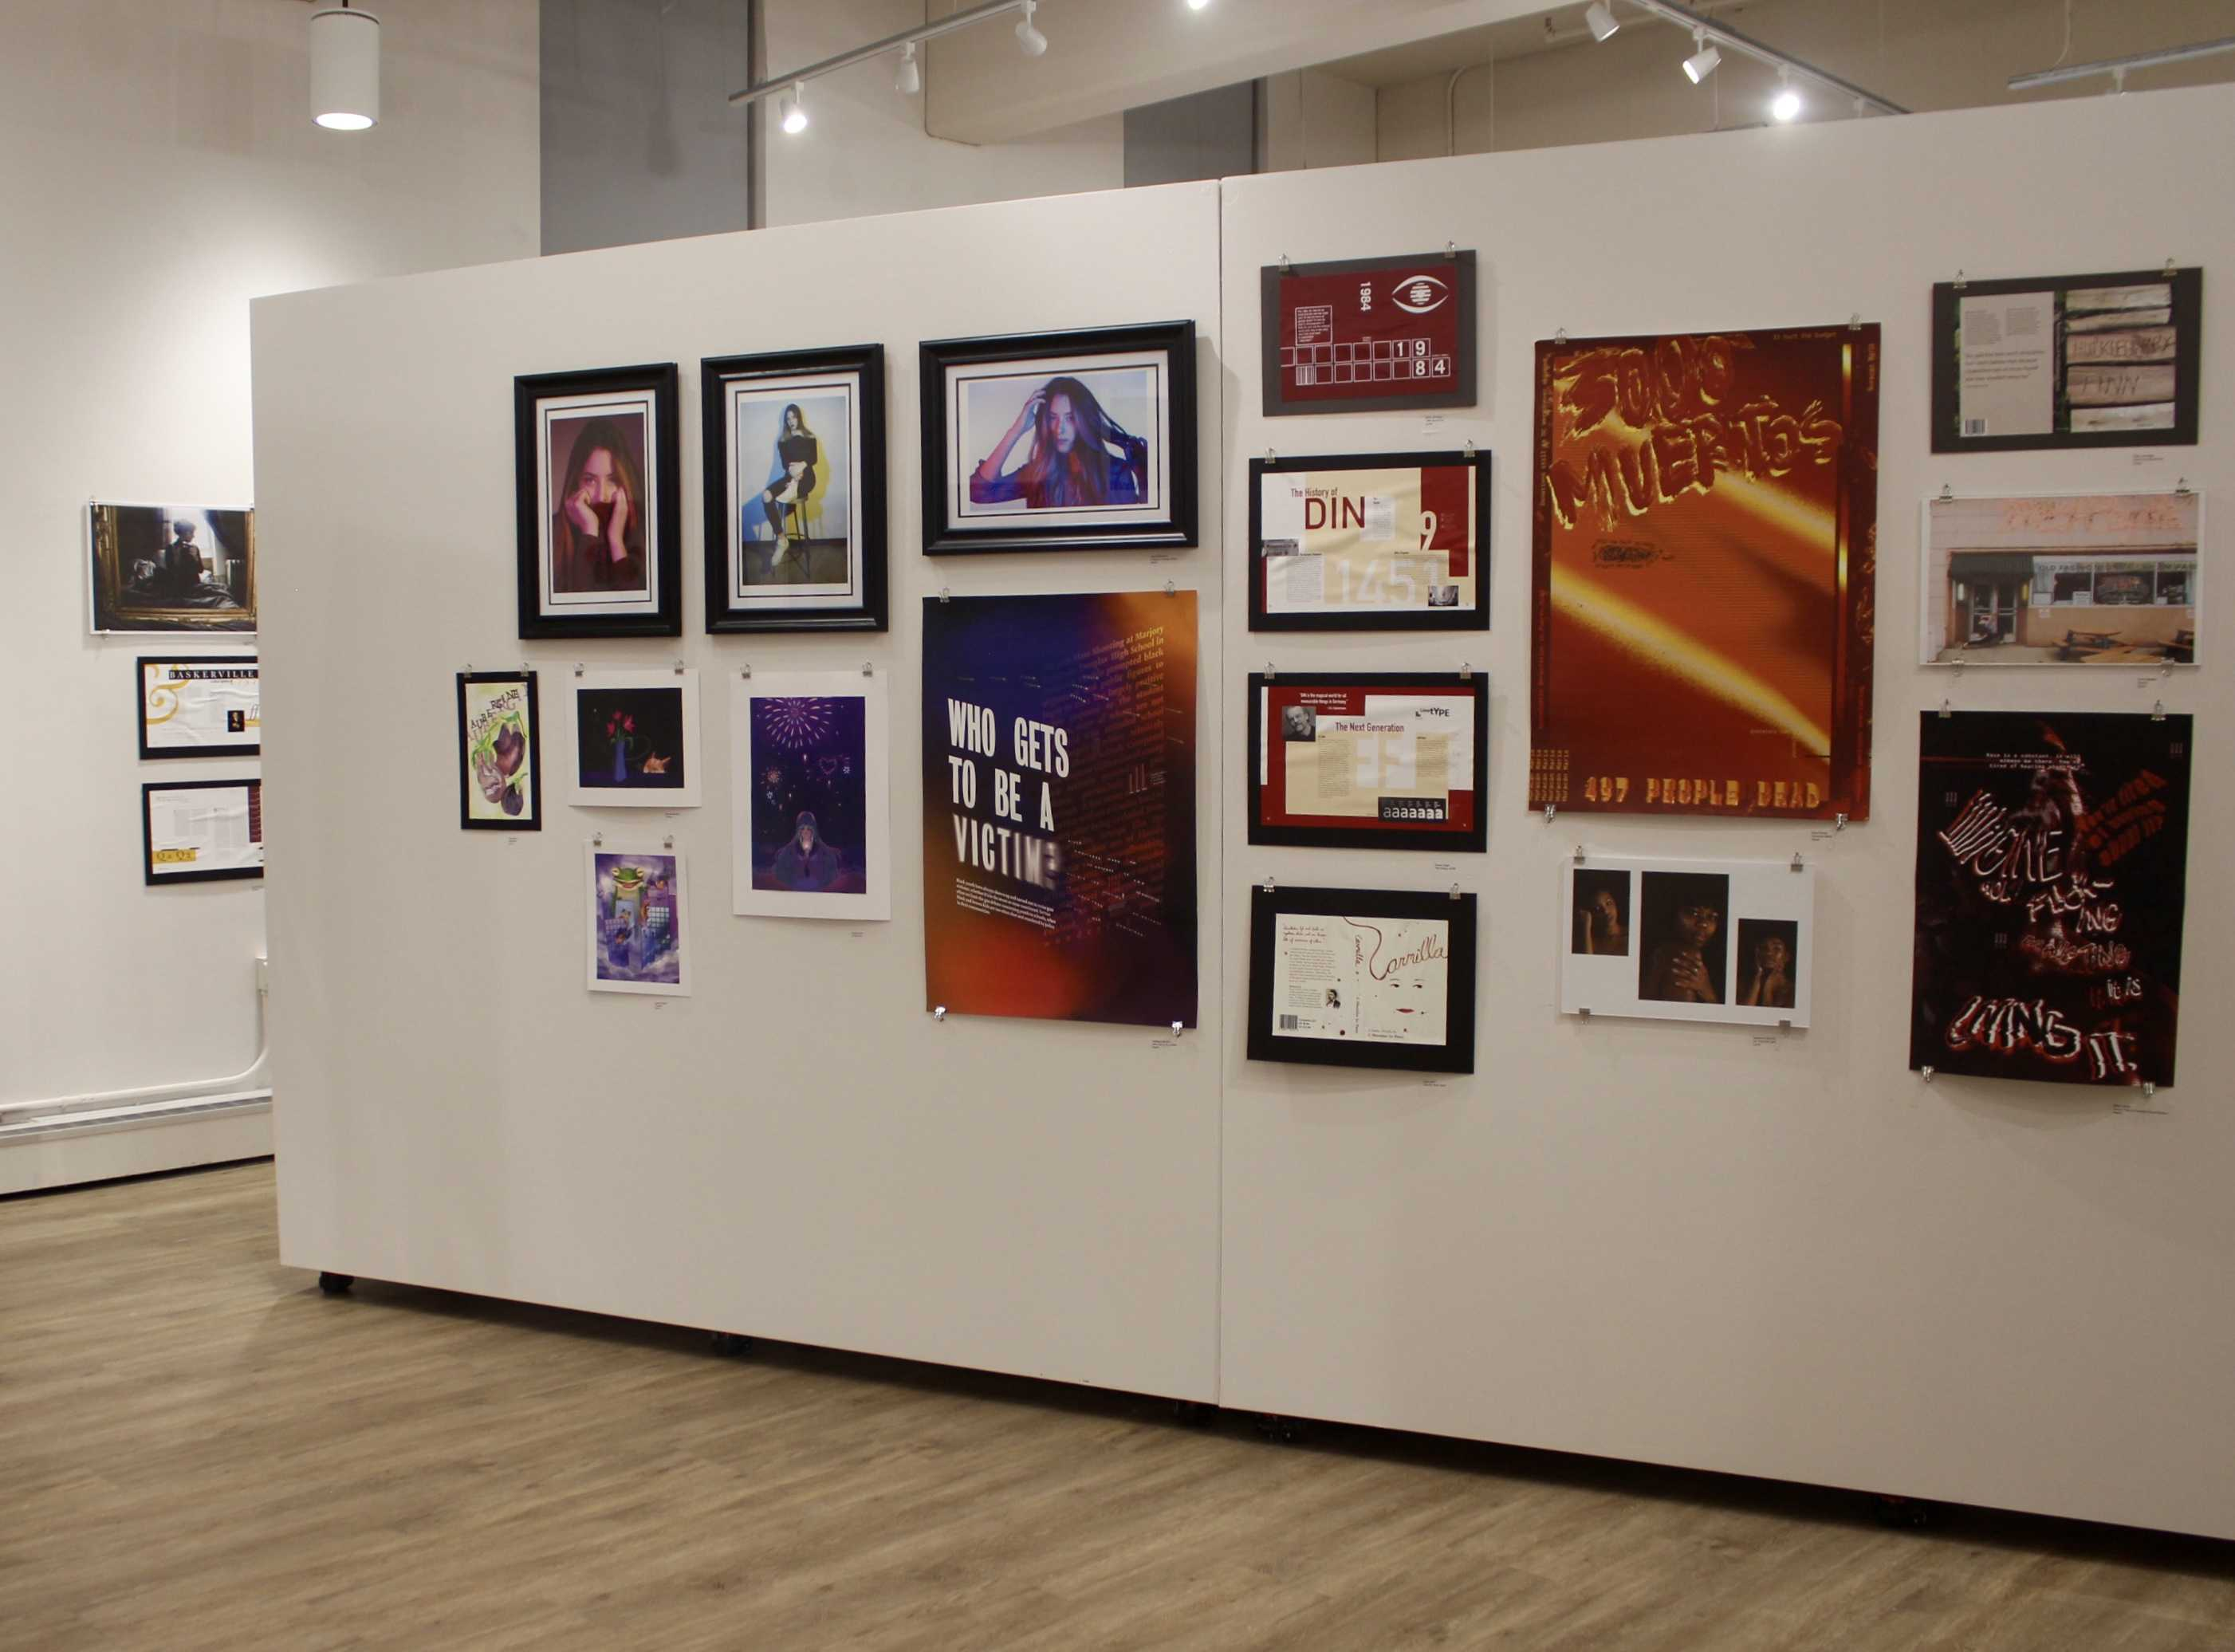 """Art hangs on the wall in Taylor Hall on Thursday, November 15, 2018. Some of the works displayed go hand in hand, showing the bystander effect. Some of the works display women photographed, some feature just a simple caption asking """"who gets to be a victim?"""" The closer you look at these works, it makes you think harder about being a bystander. Photo by Ashley Miller."""